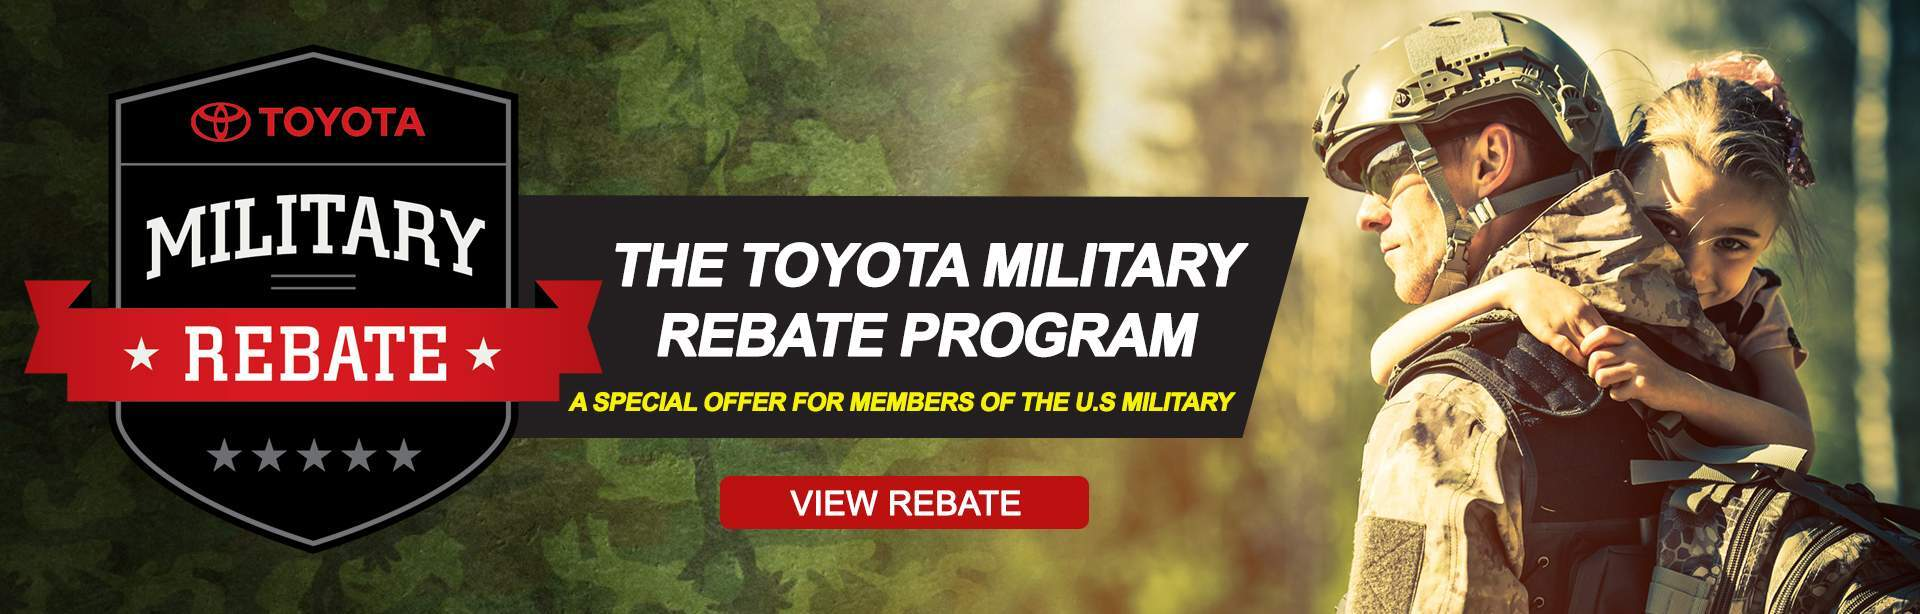 Toyota Military Rebate Program